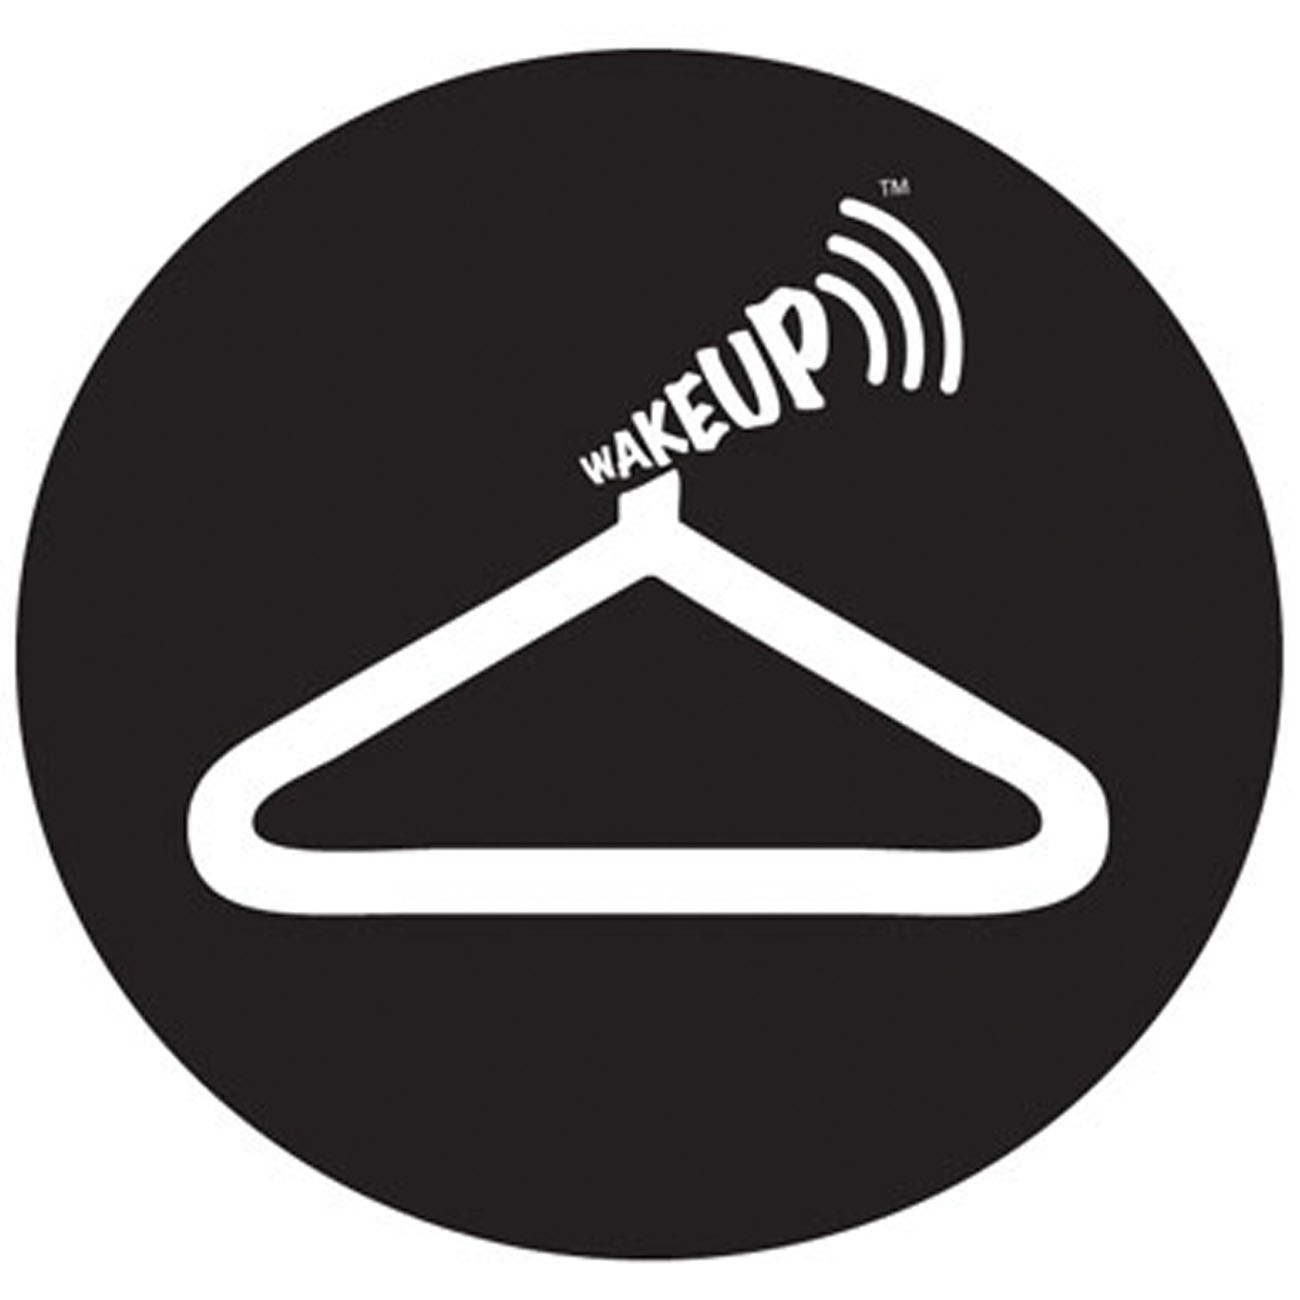 Conscious Swap Shopping Events logo ident